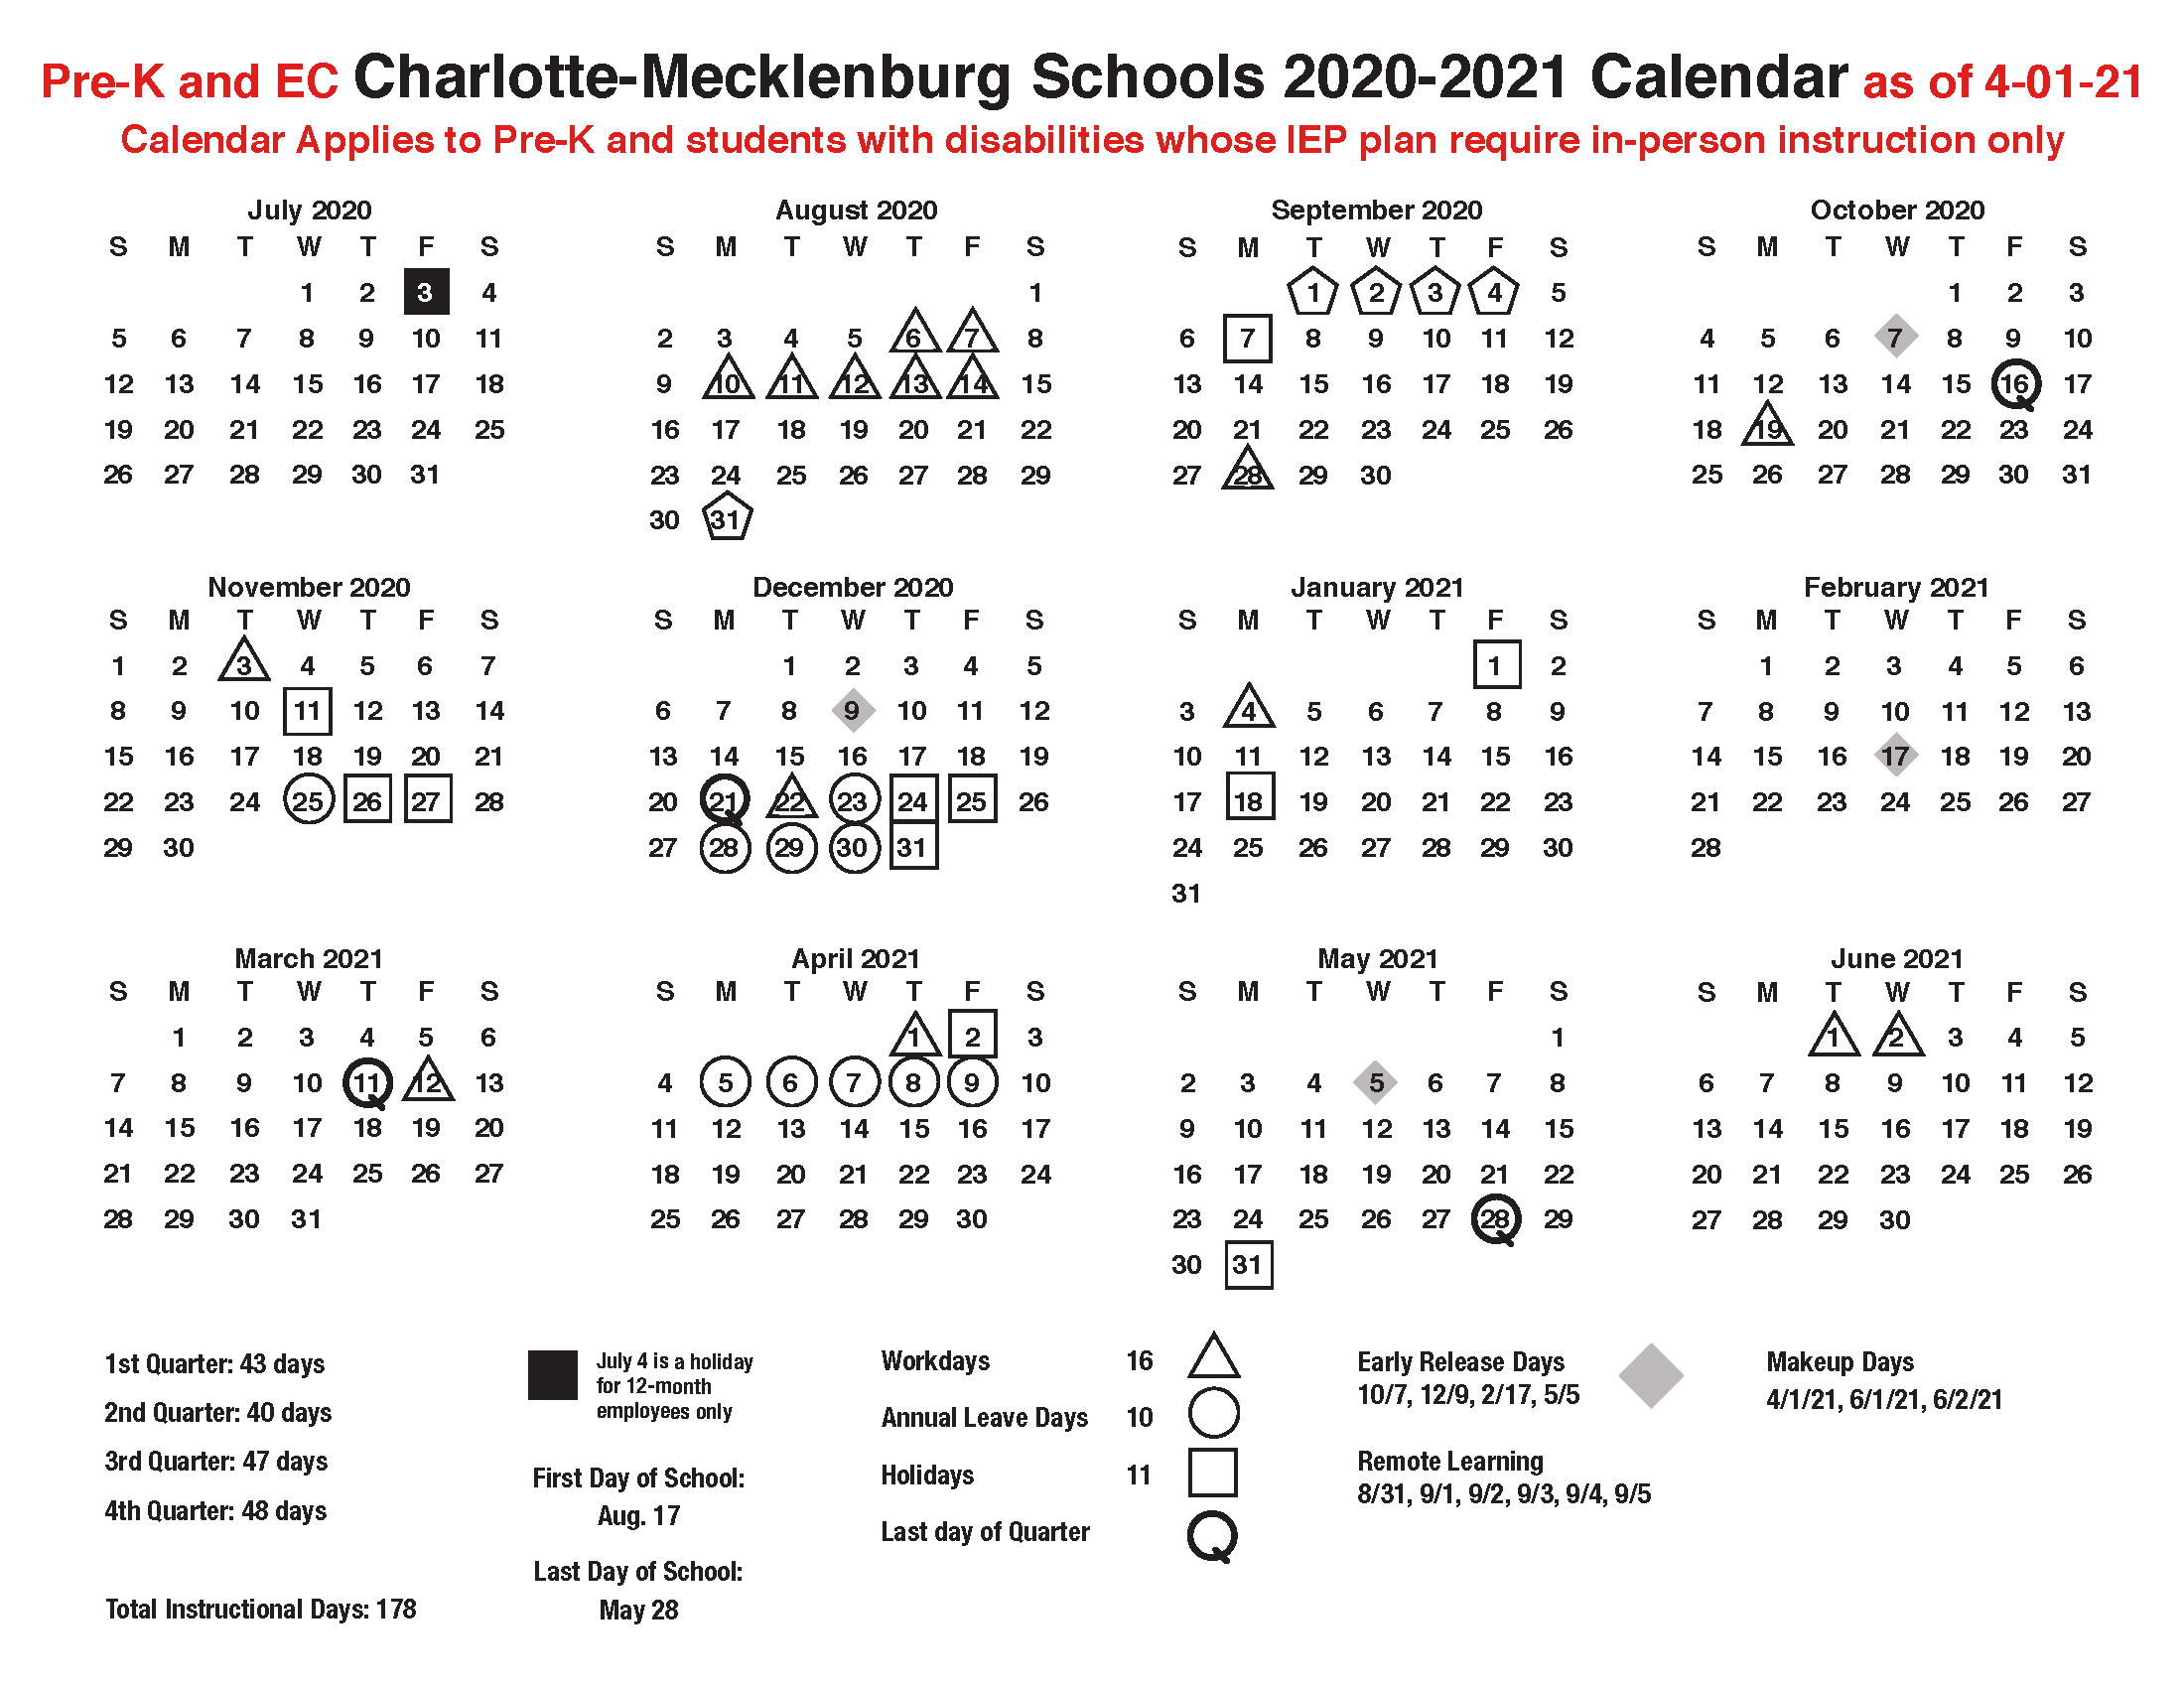 2020-2021 Pre-K and EC Academic Calendar (Revised 4-1-21).png